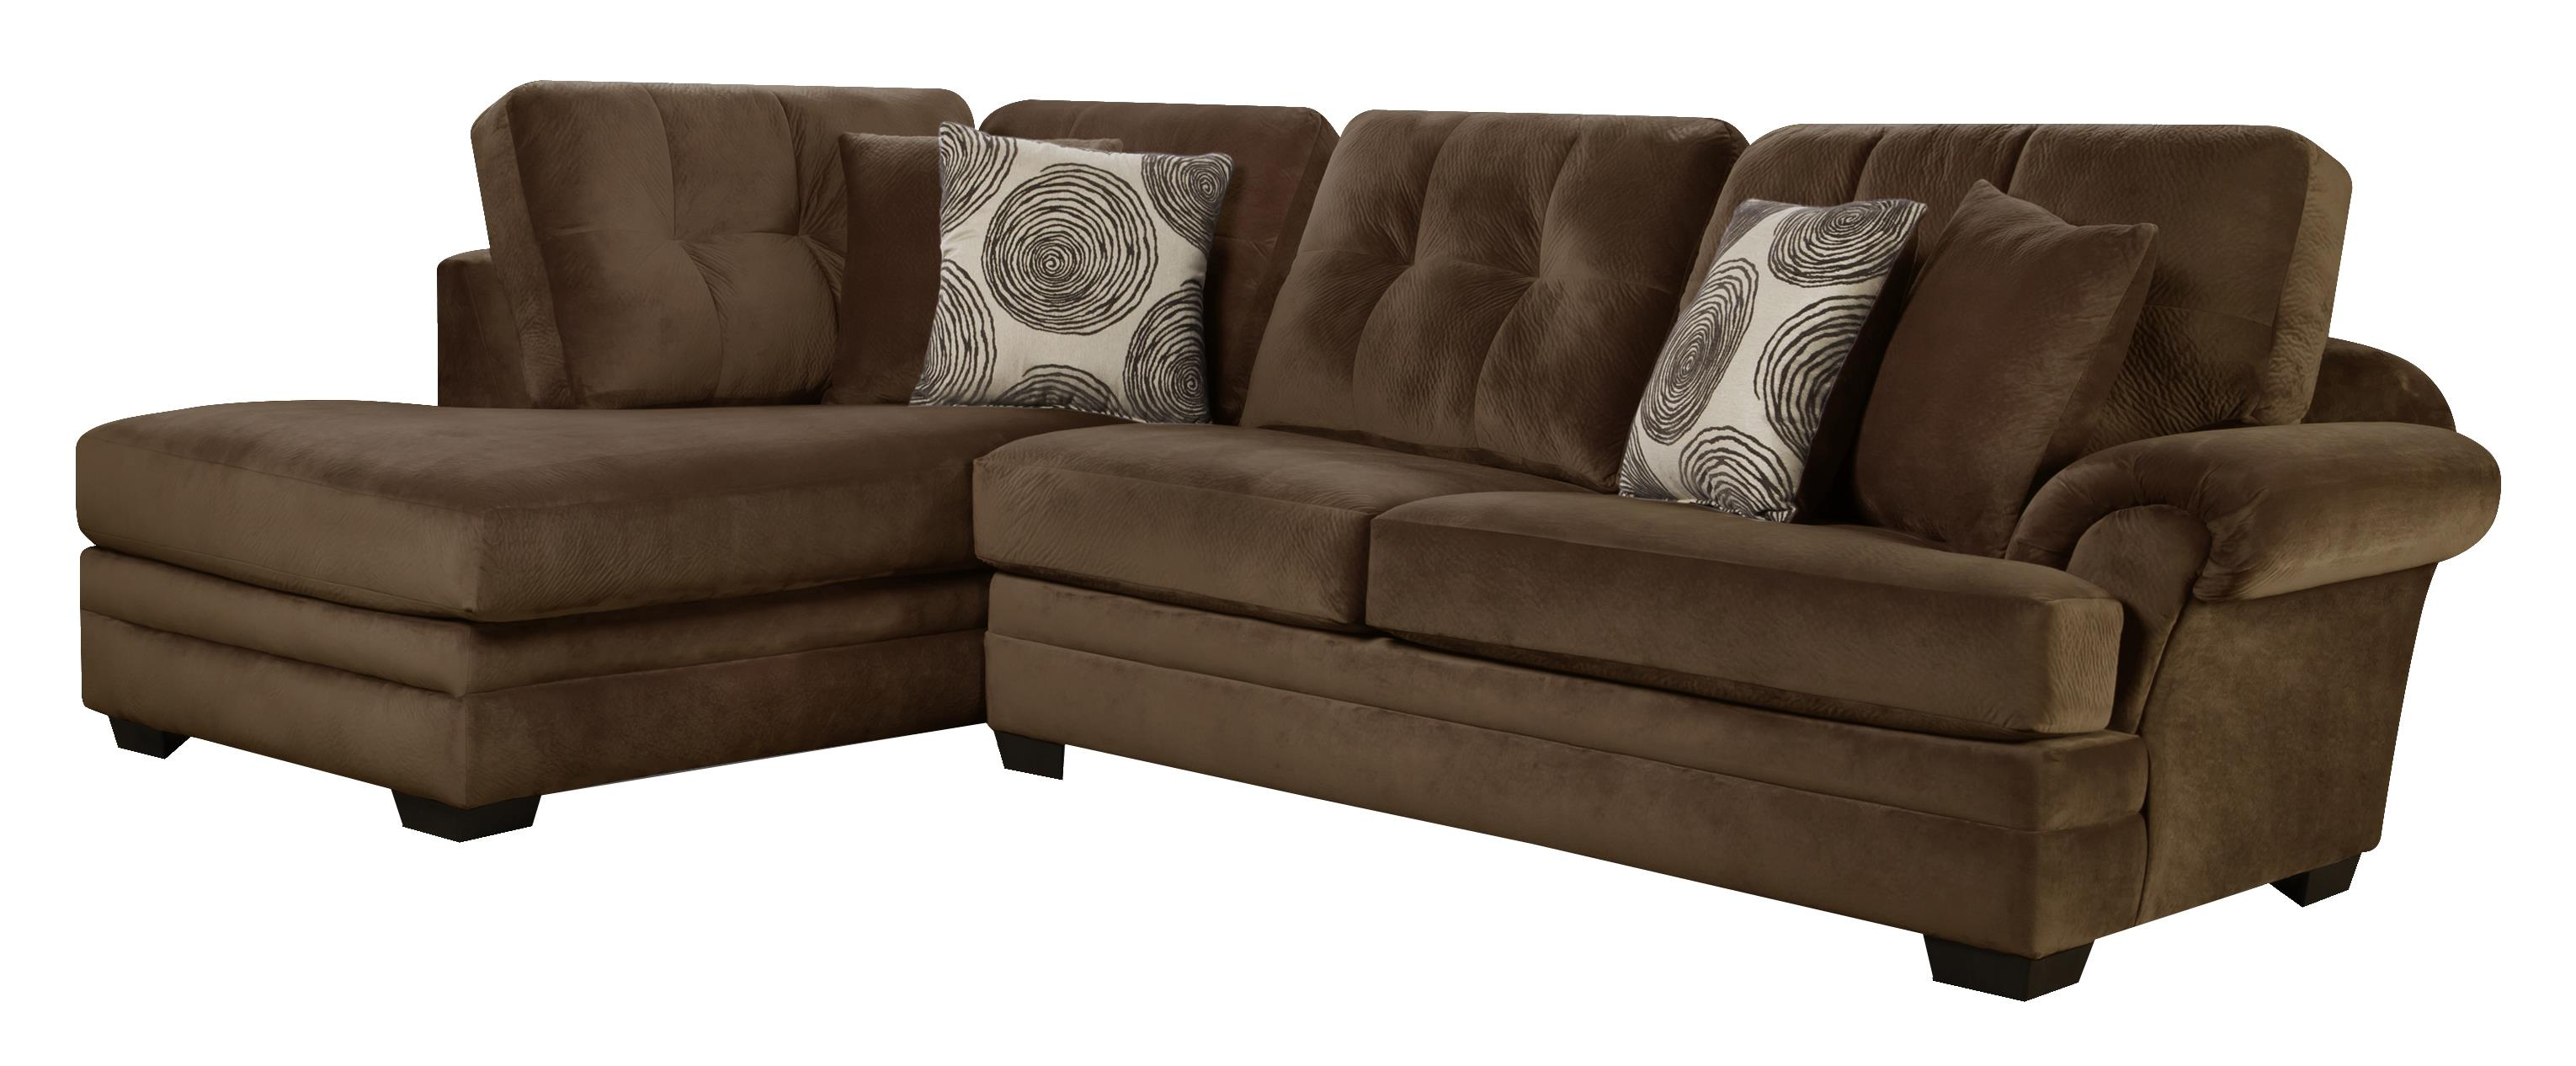 Small Sectional Sofa with Chaise on Left Side by Corinthian